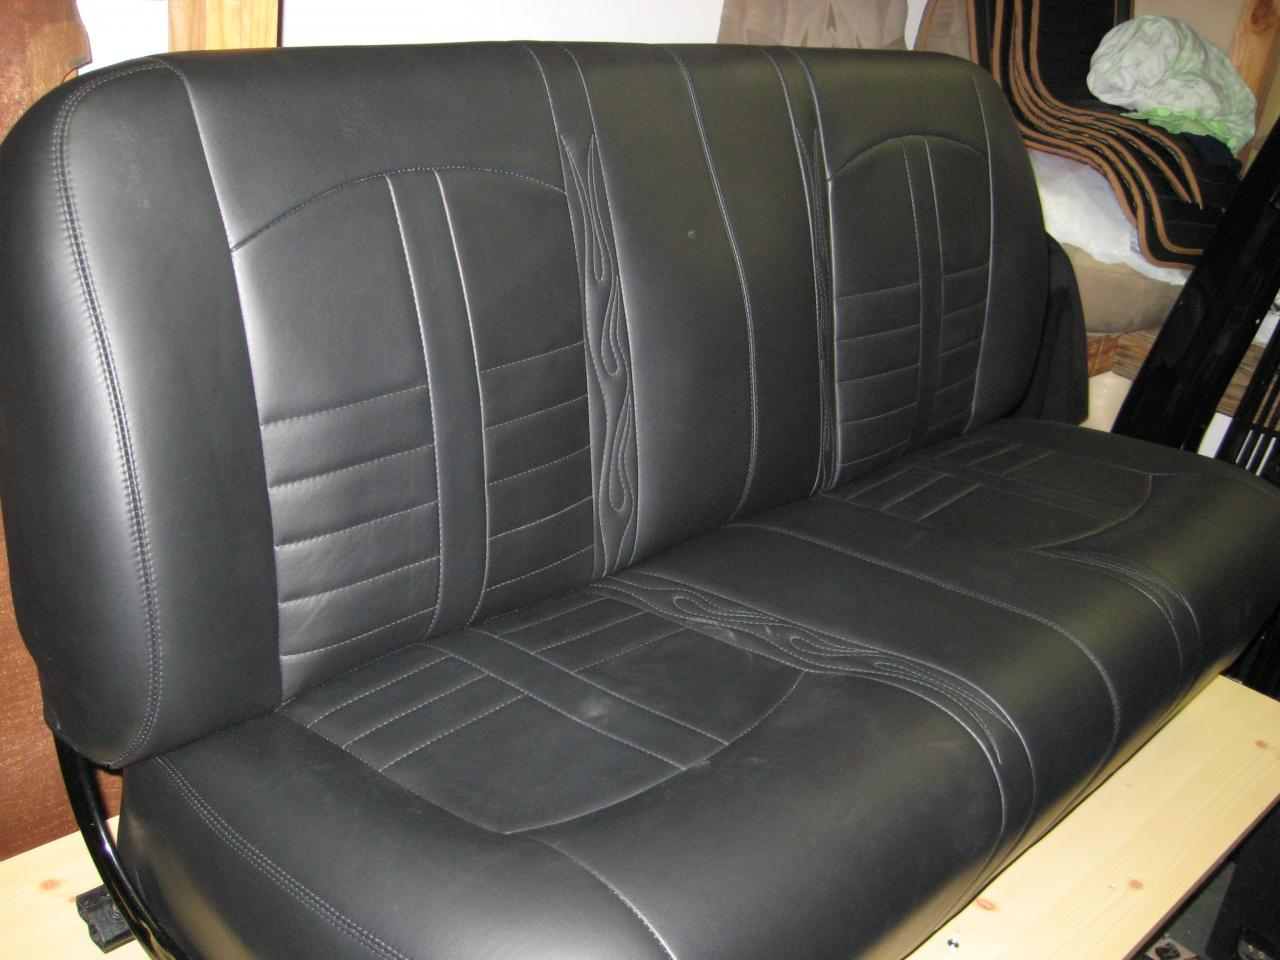 Cheap Car Seats and Original Seats Parts